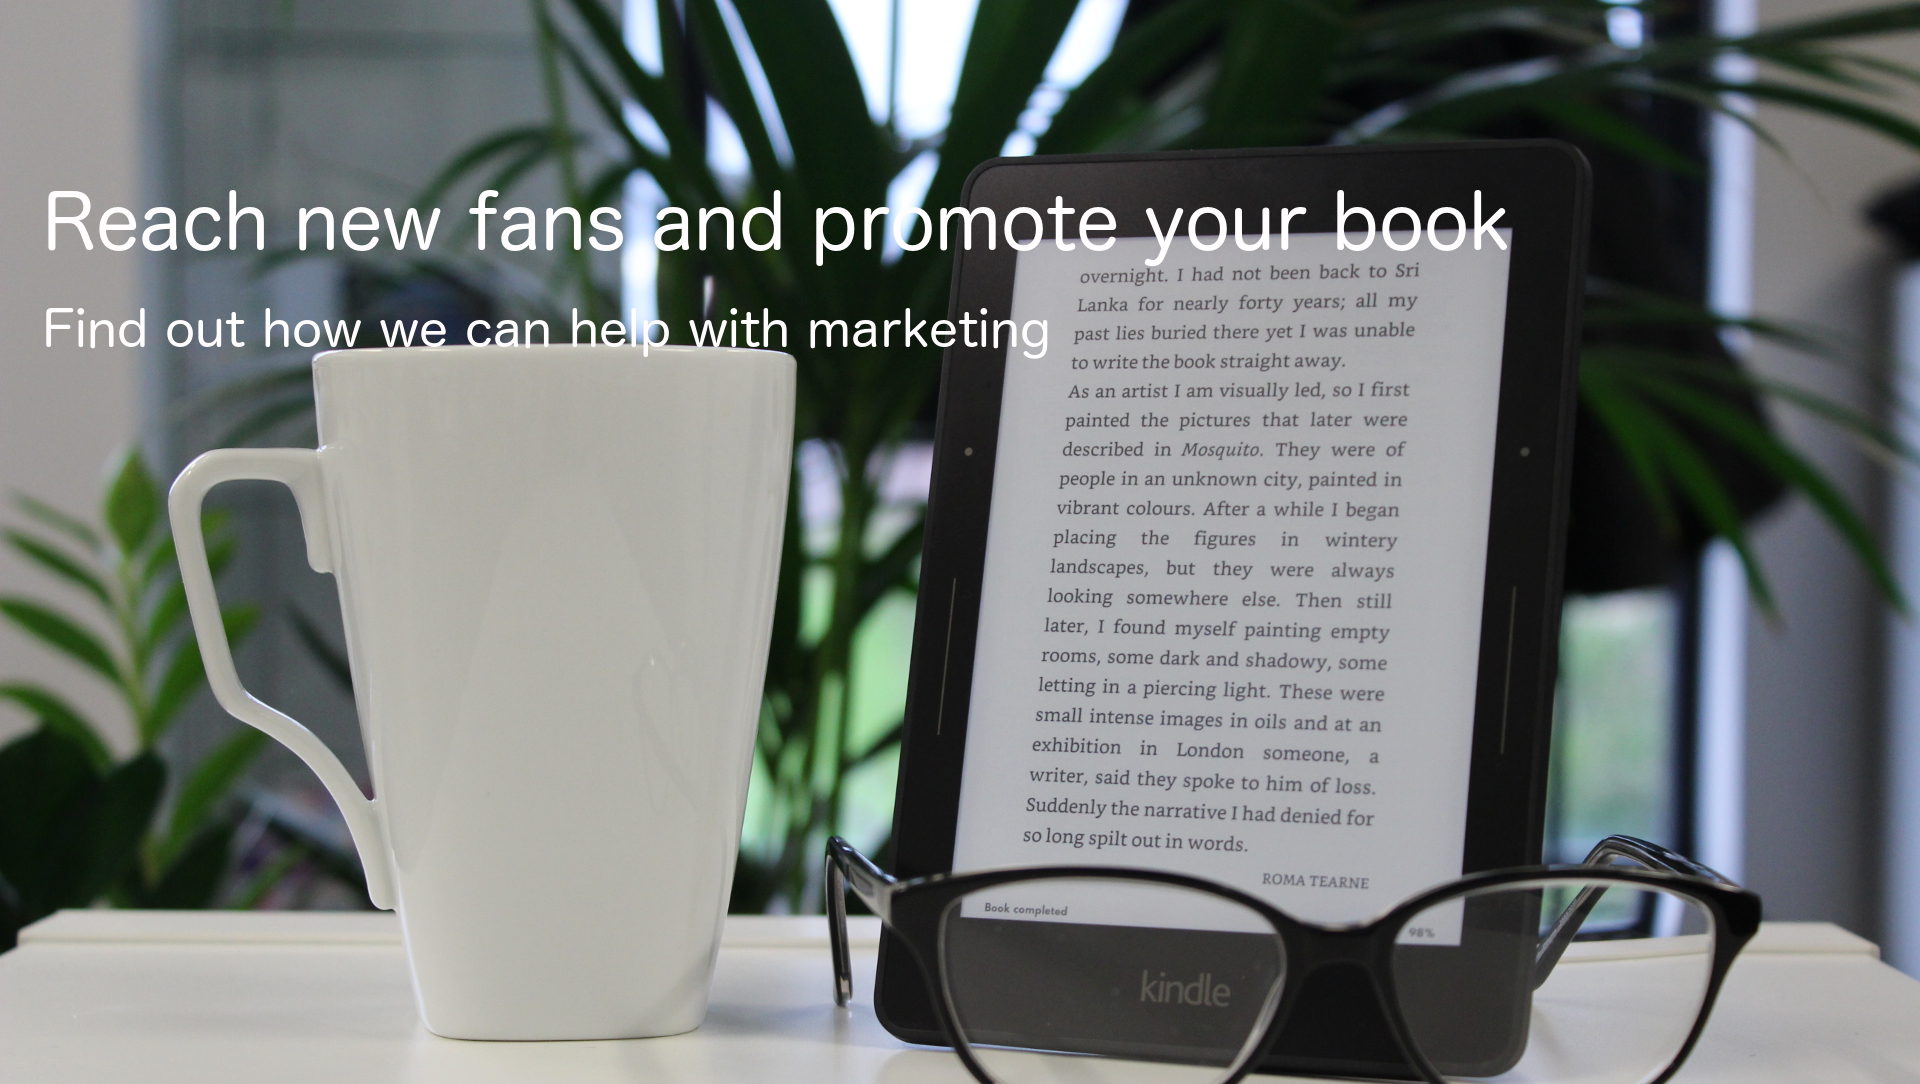 kindle, glasses and coffee mug